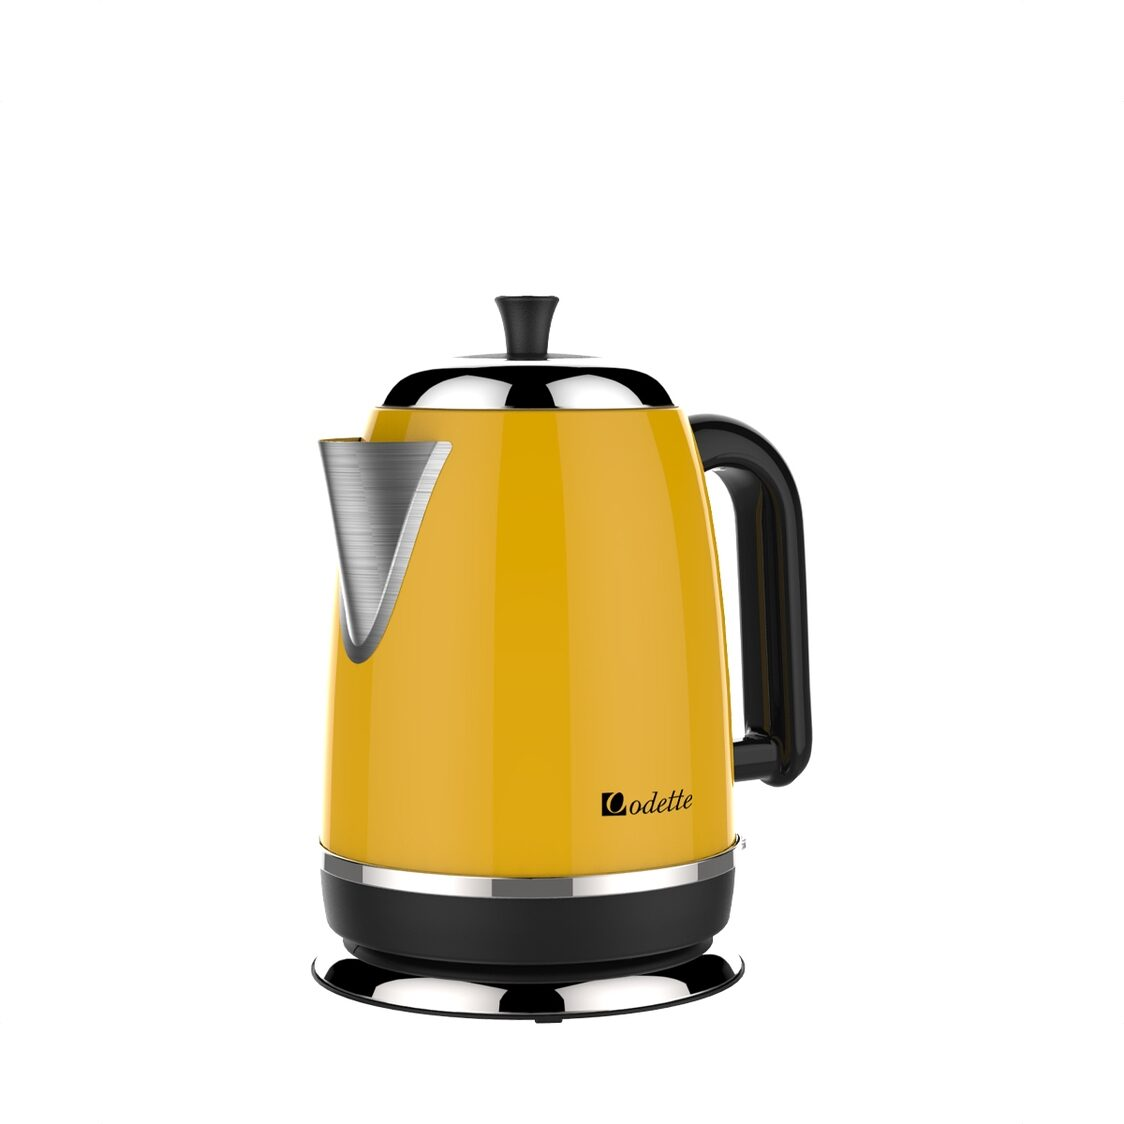 17L Retro Design Electric Kettle Yellow